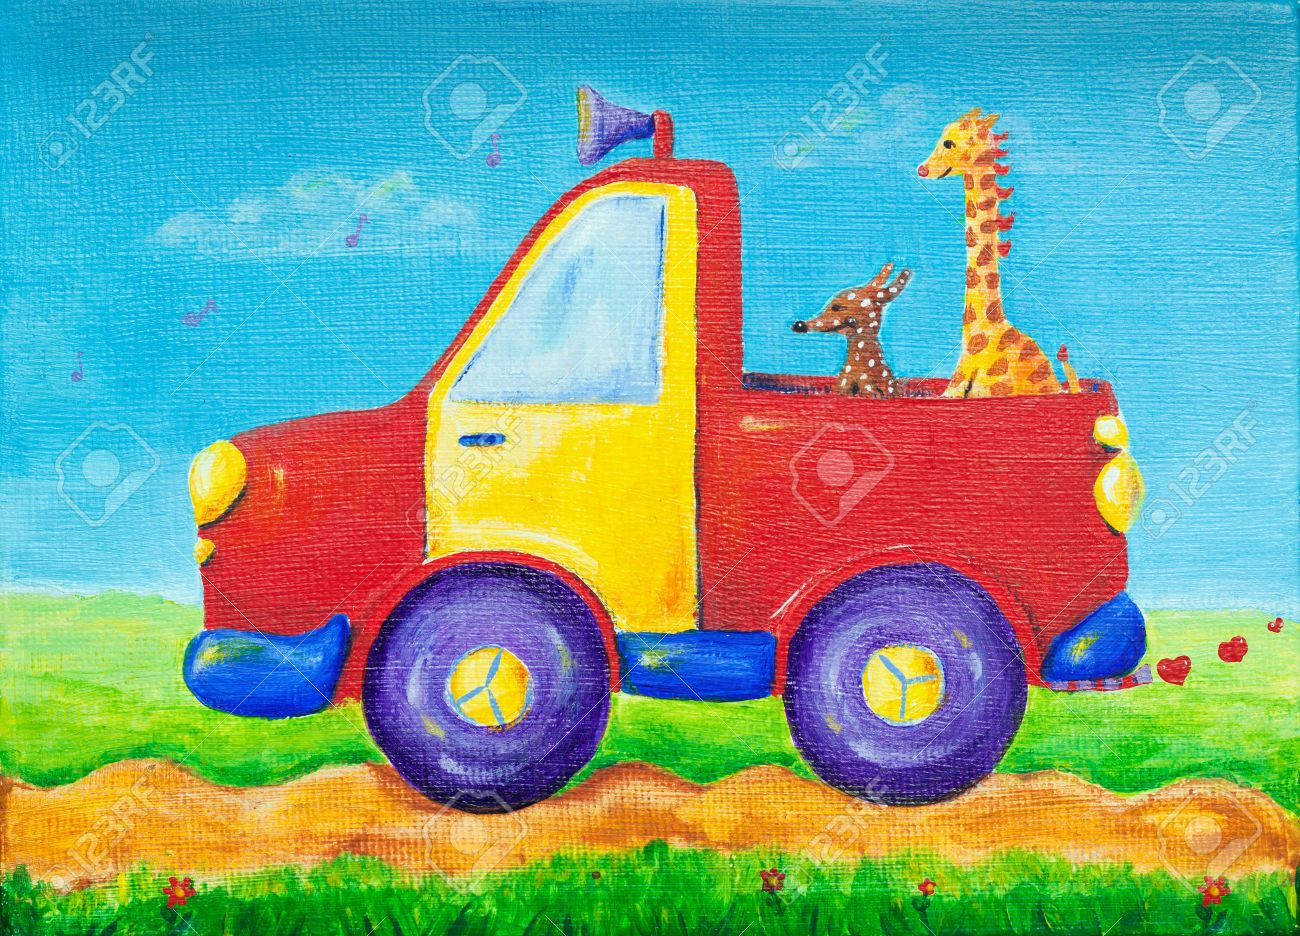 Colorful And Creative Childrens Painting Of A Dog And A Giraffe